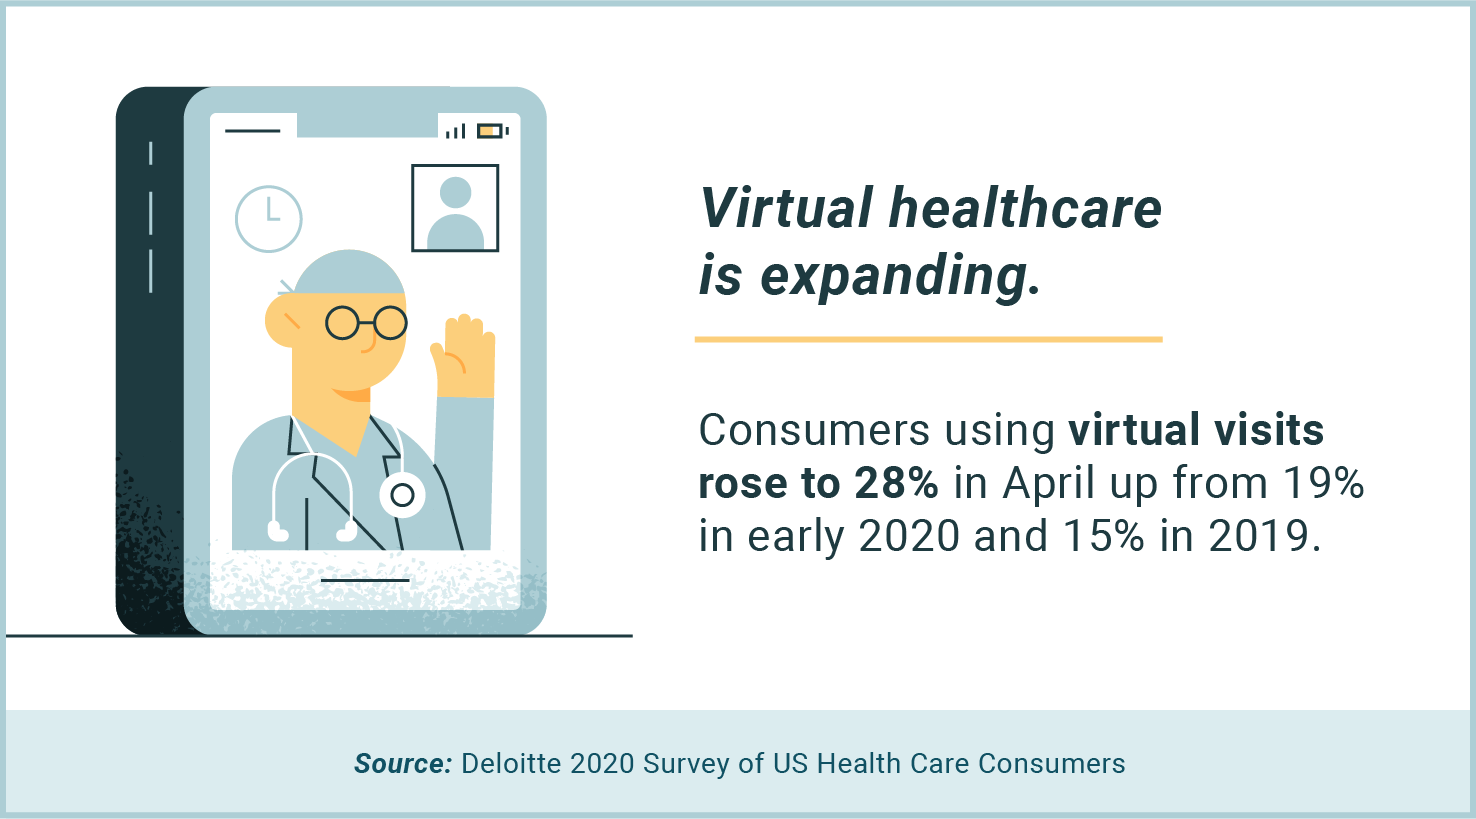 virtual healthcare is expanding